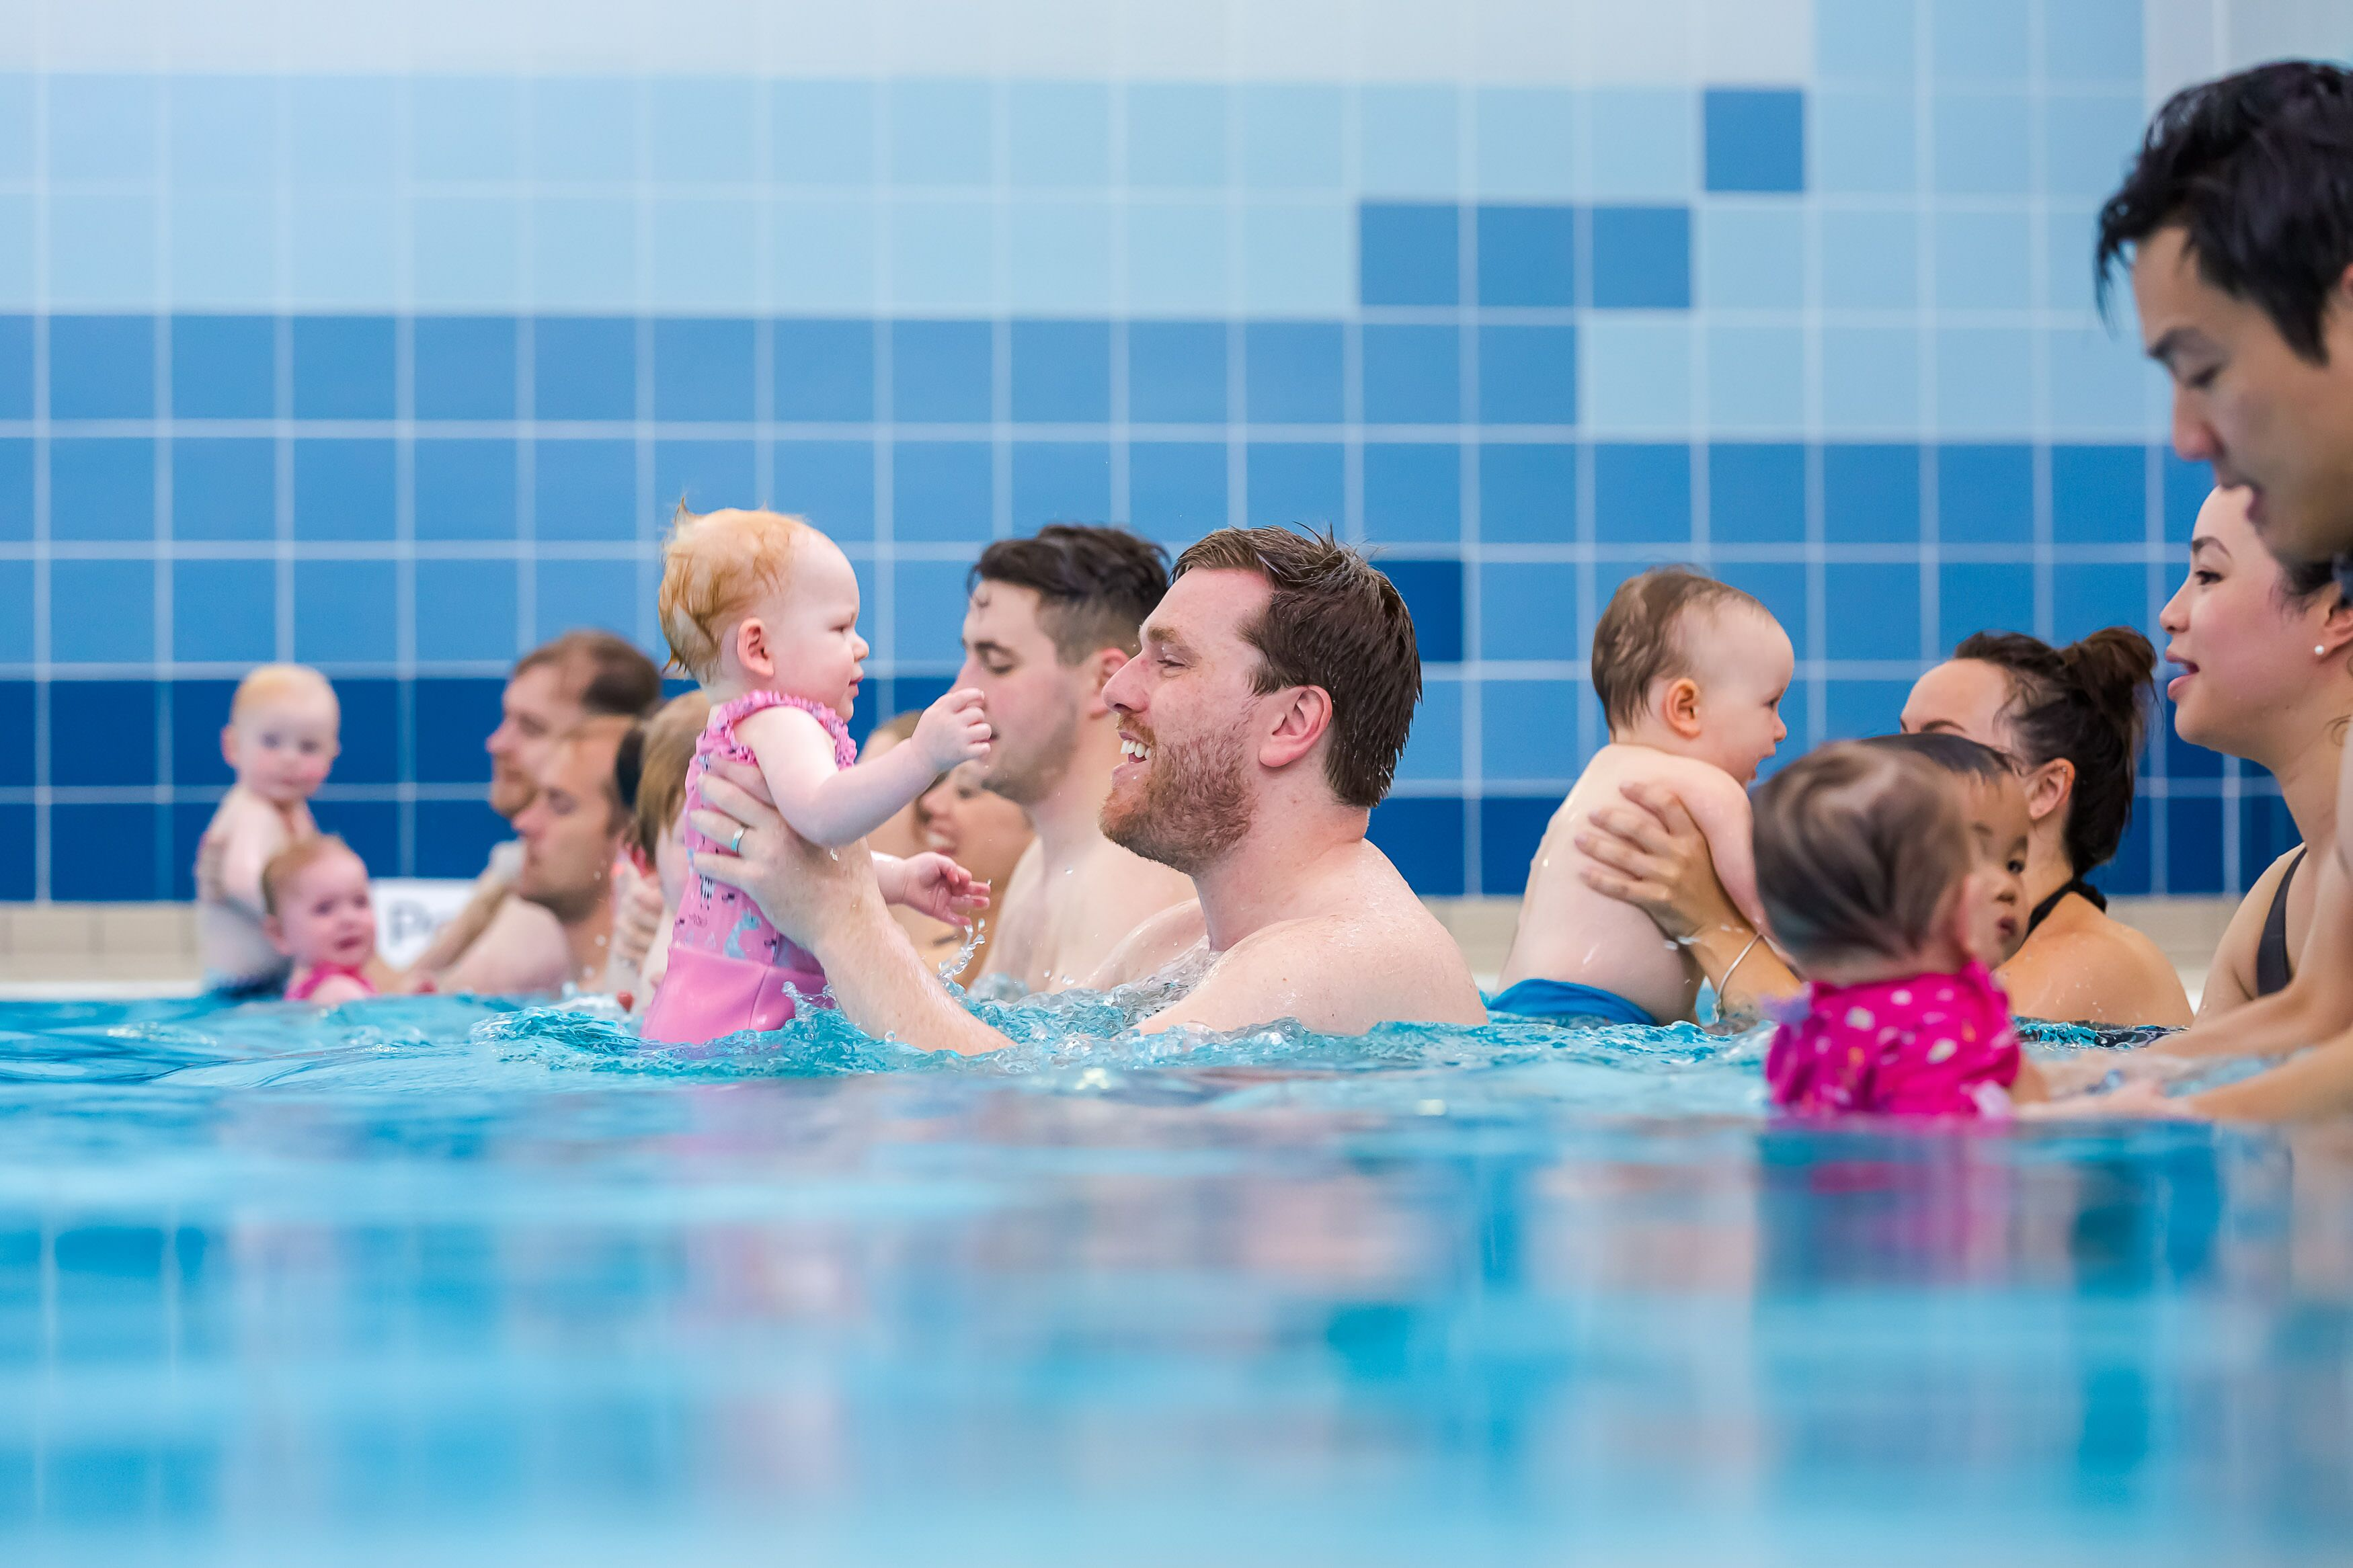 A dad and baby girl enjoy a baby swimming lesson